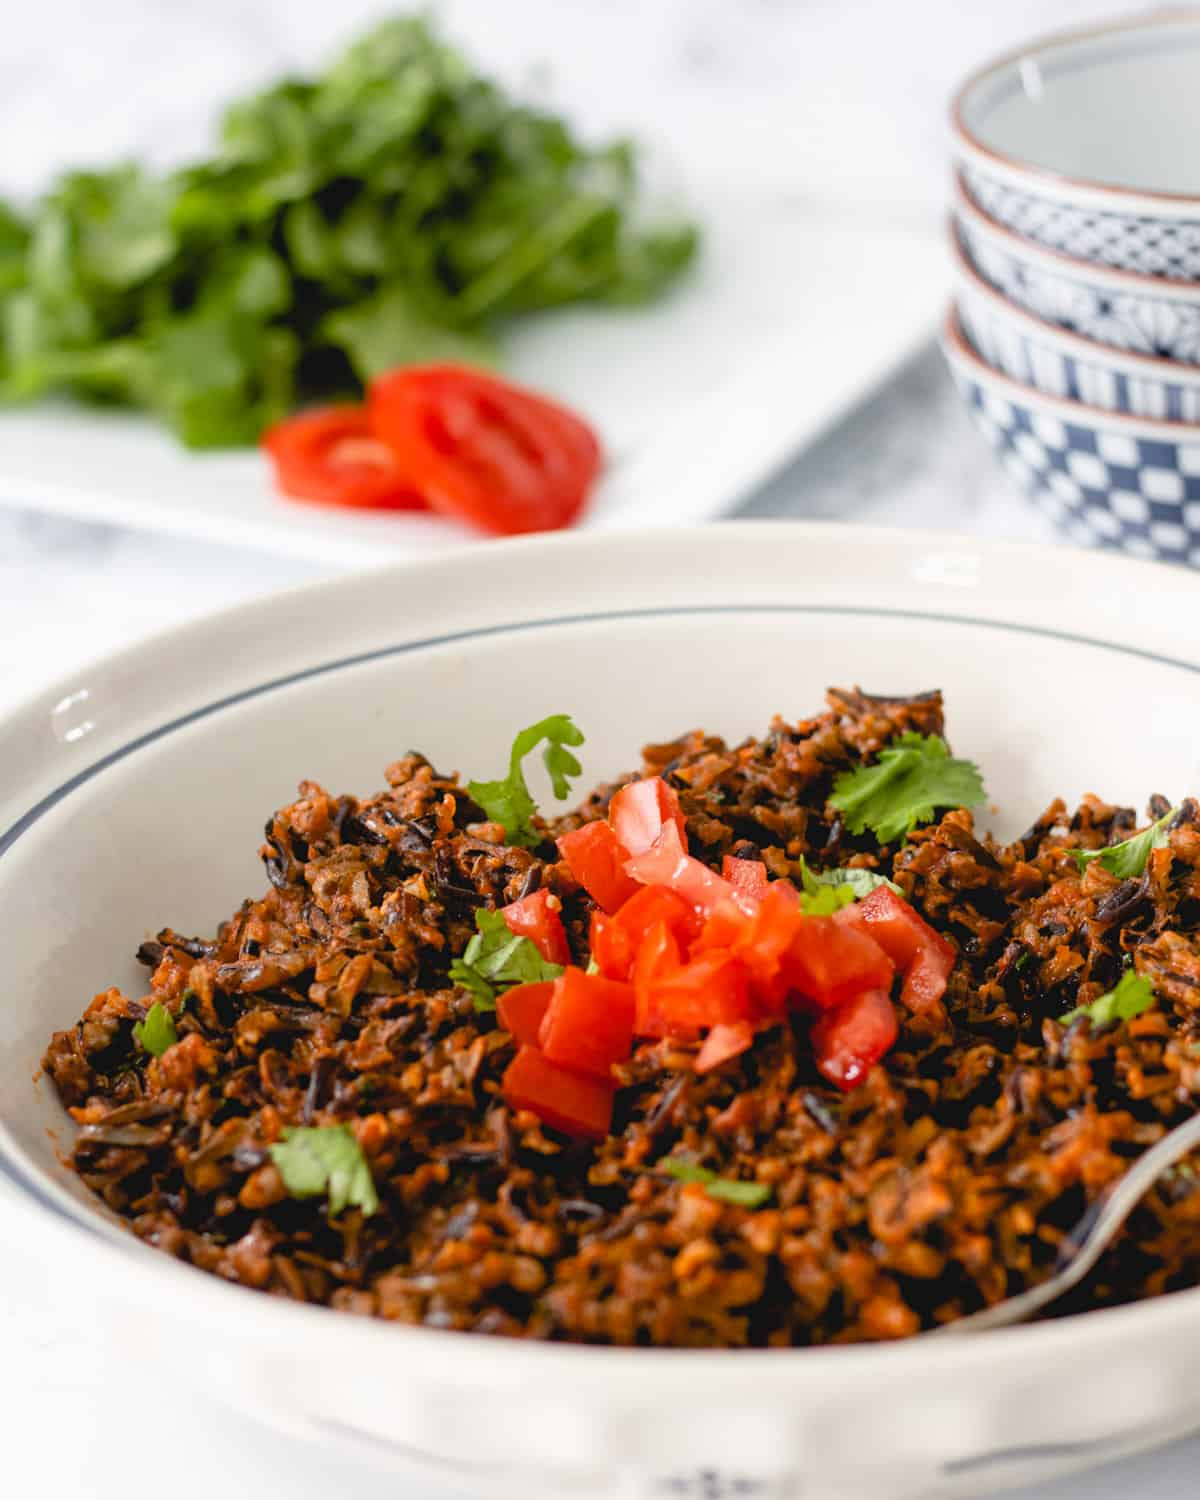 Bowl of Mexican wild rice. Tomatoes and cilantro on a plate in the background.